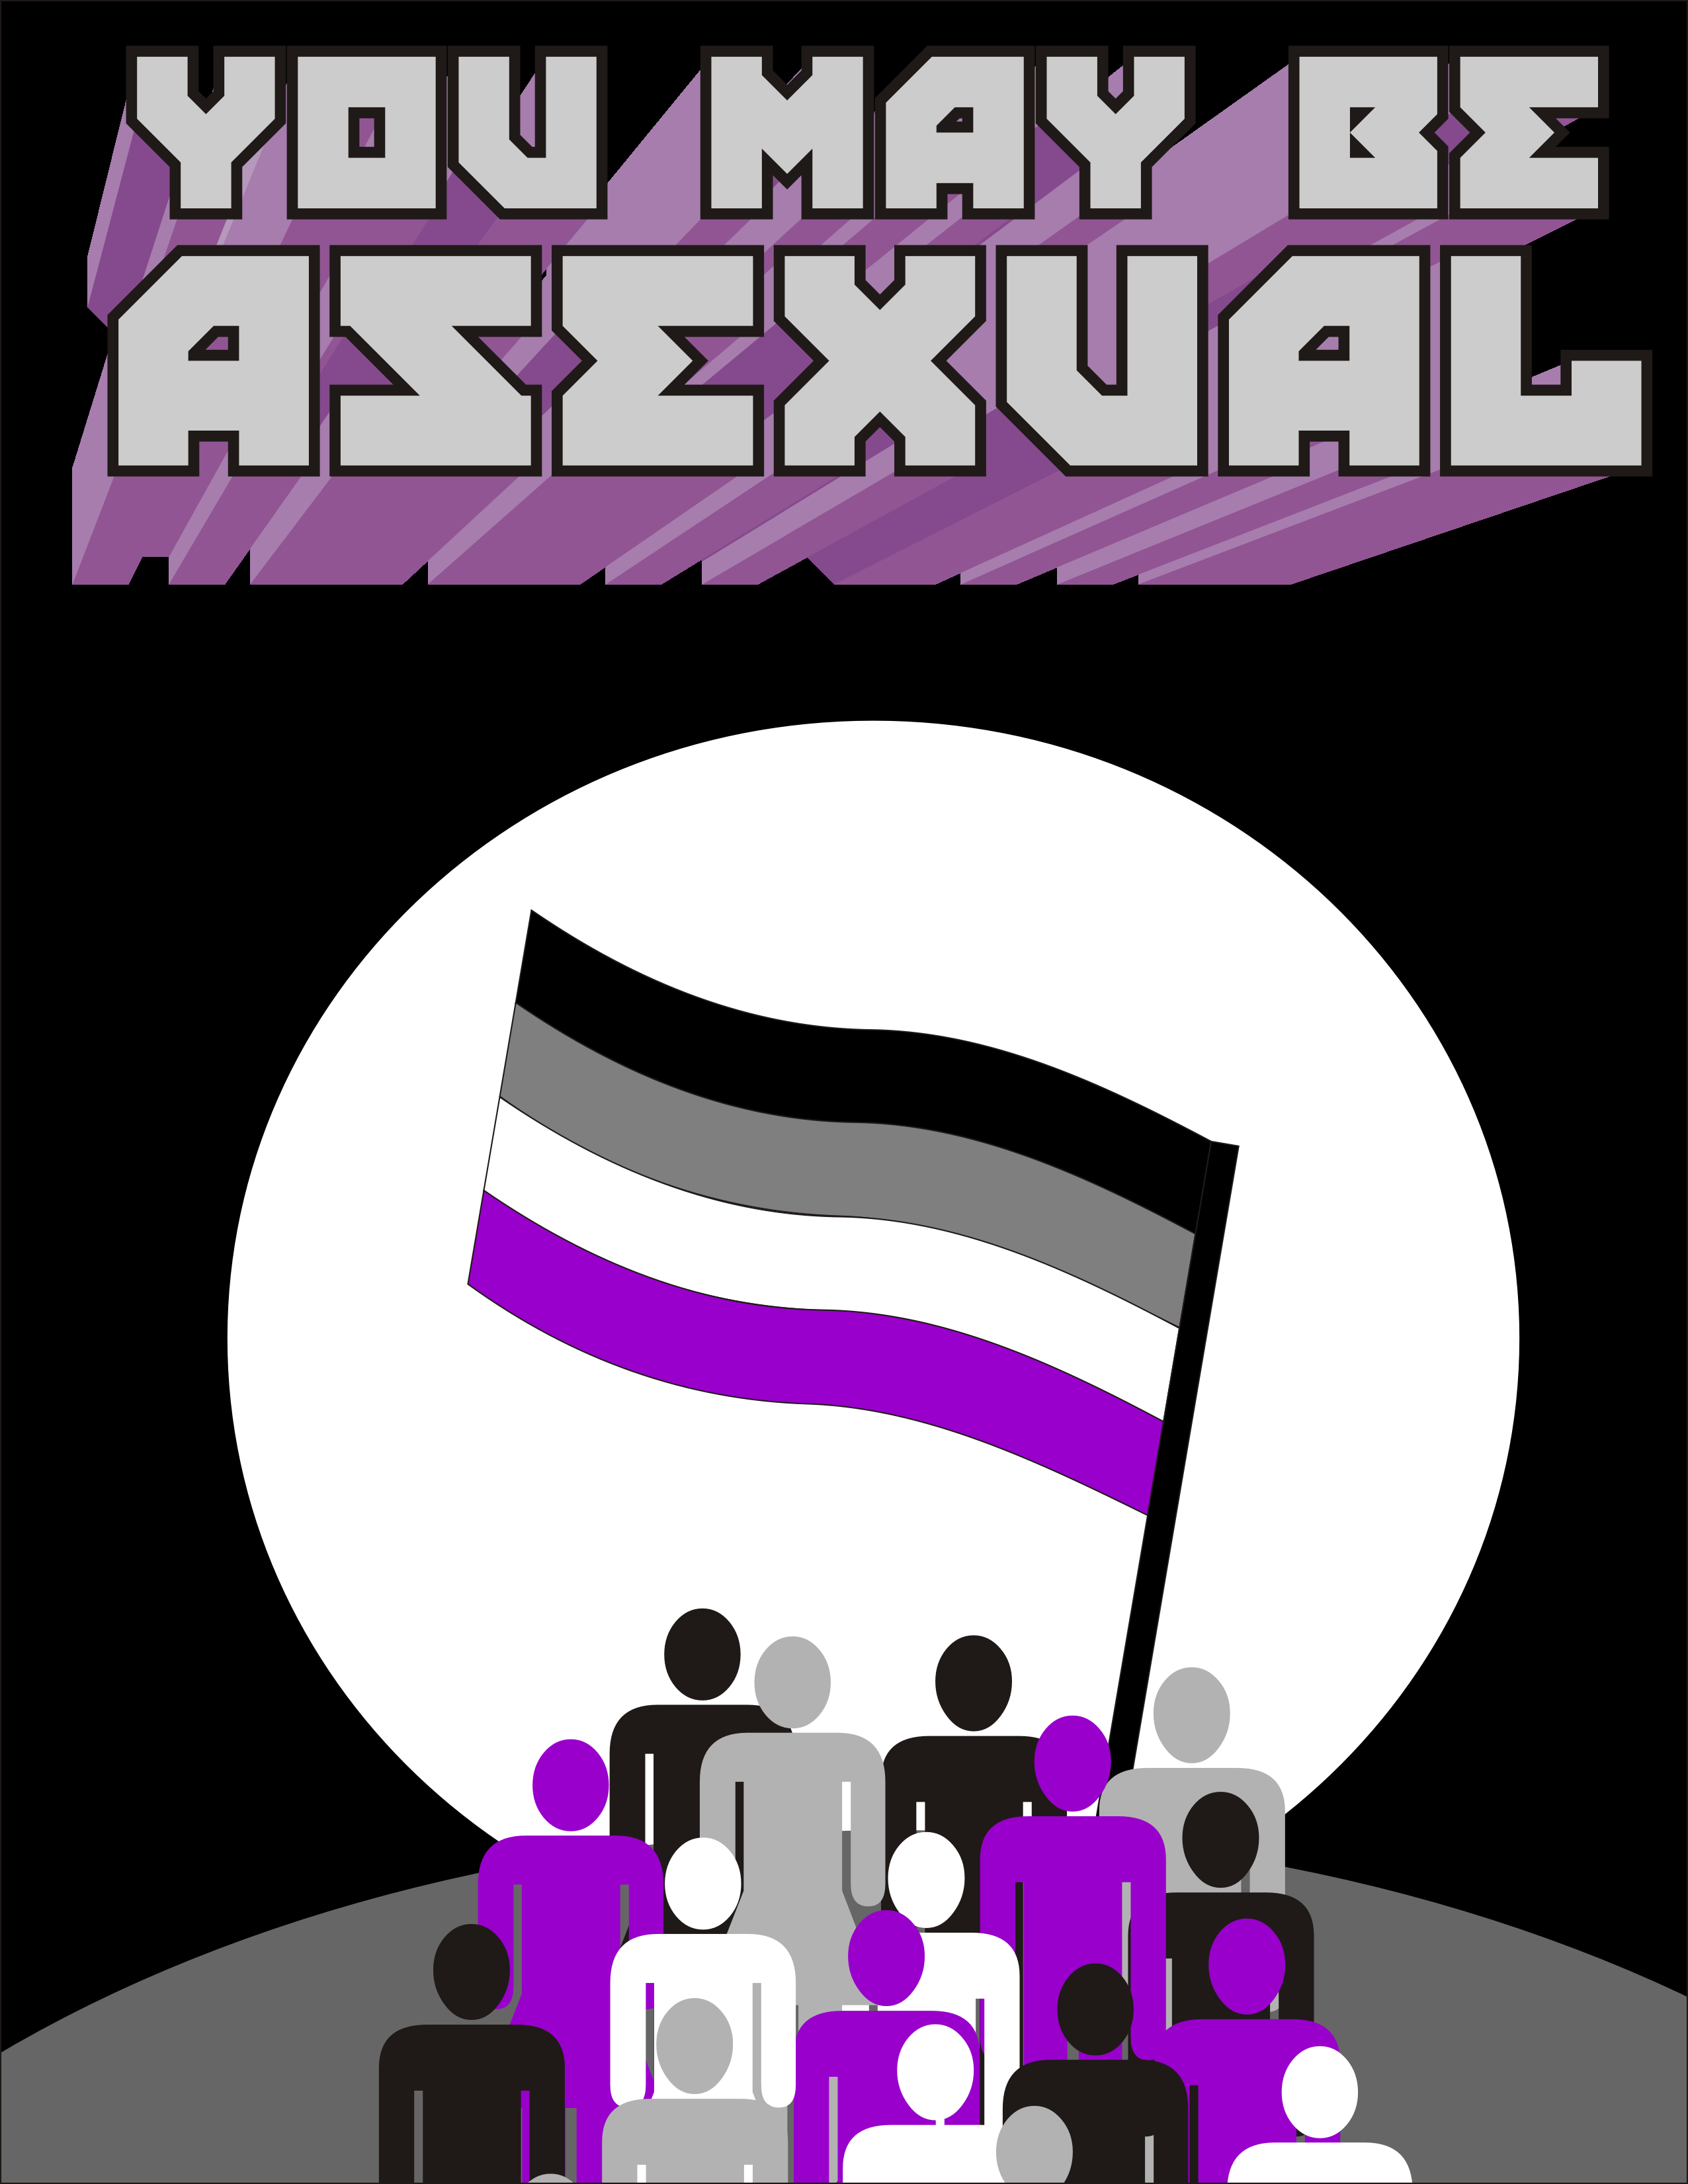 Aesexuality wikipedia